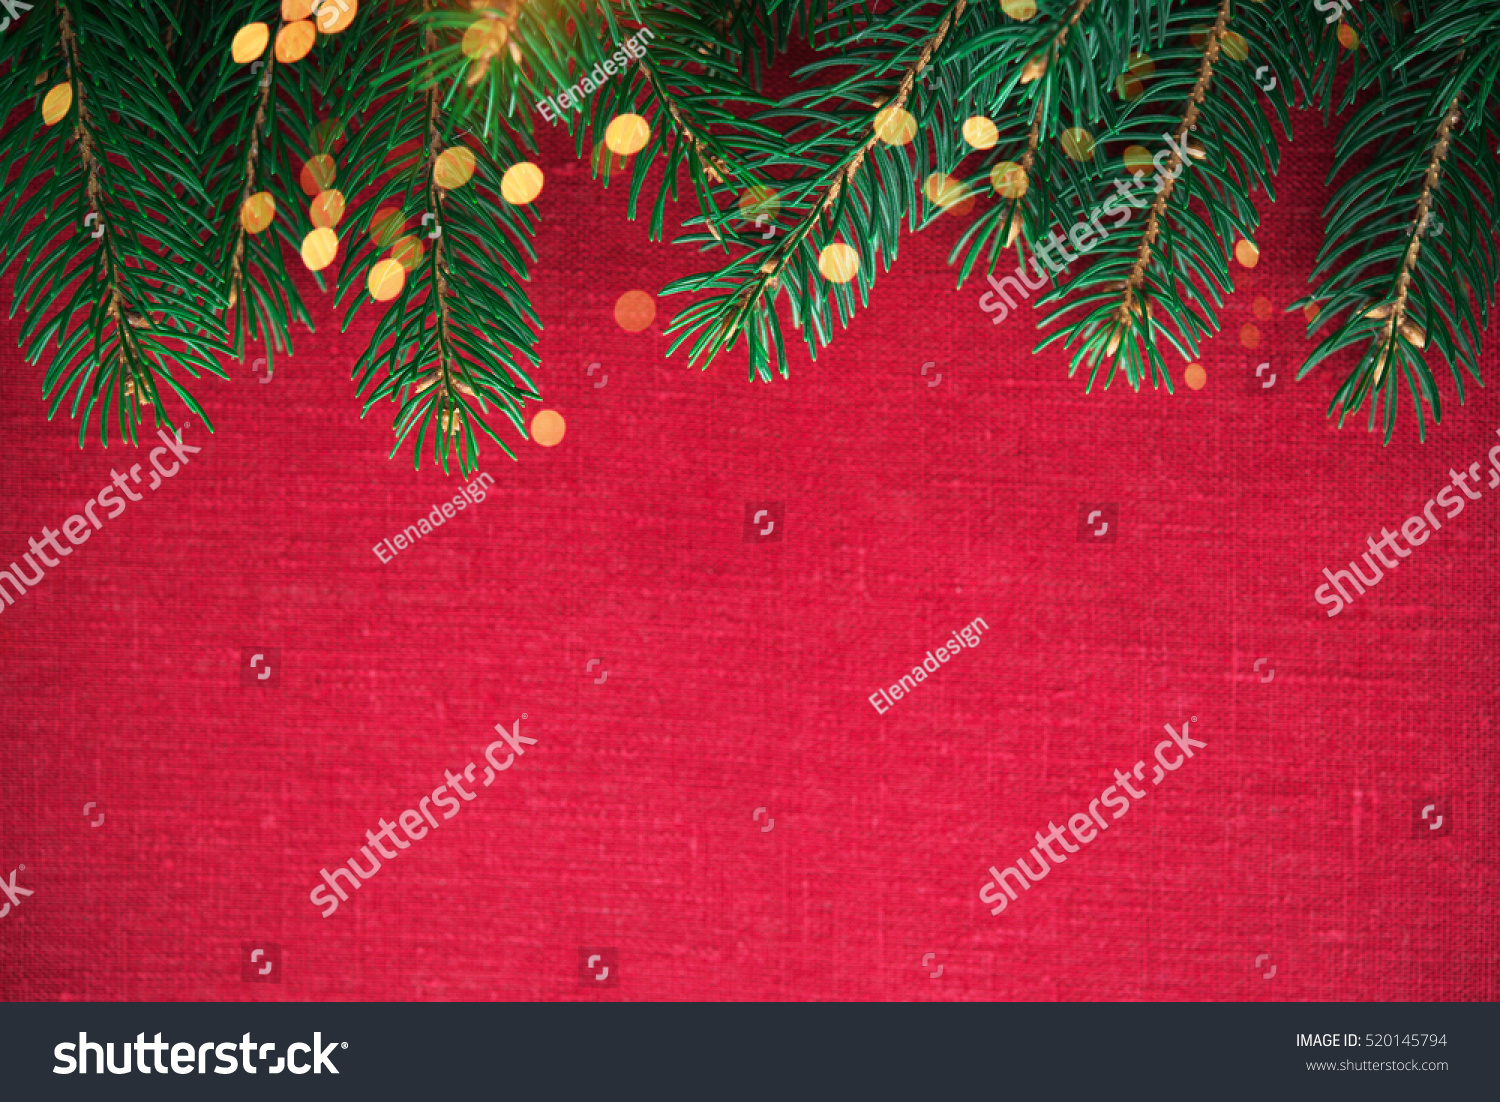 Christmas Background Xmas Tree Twinkle Bokeh Stock Photo ...